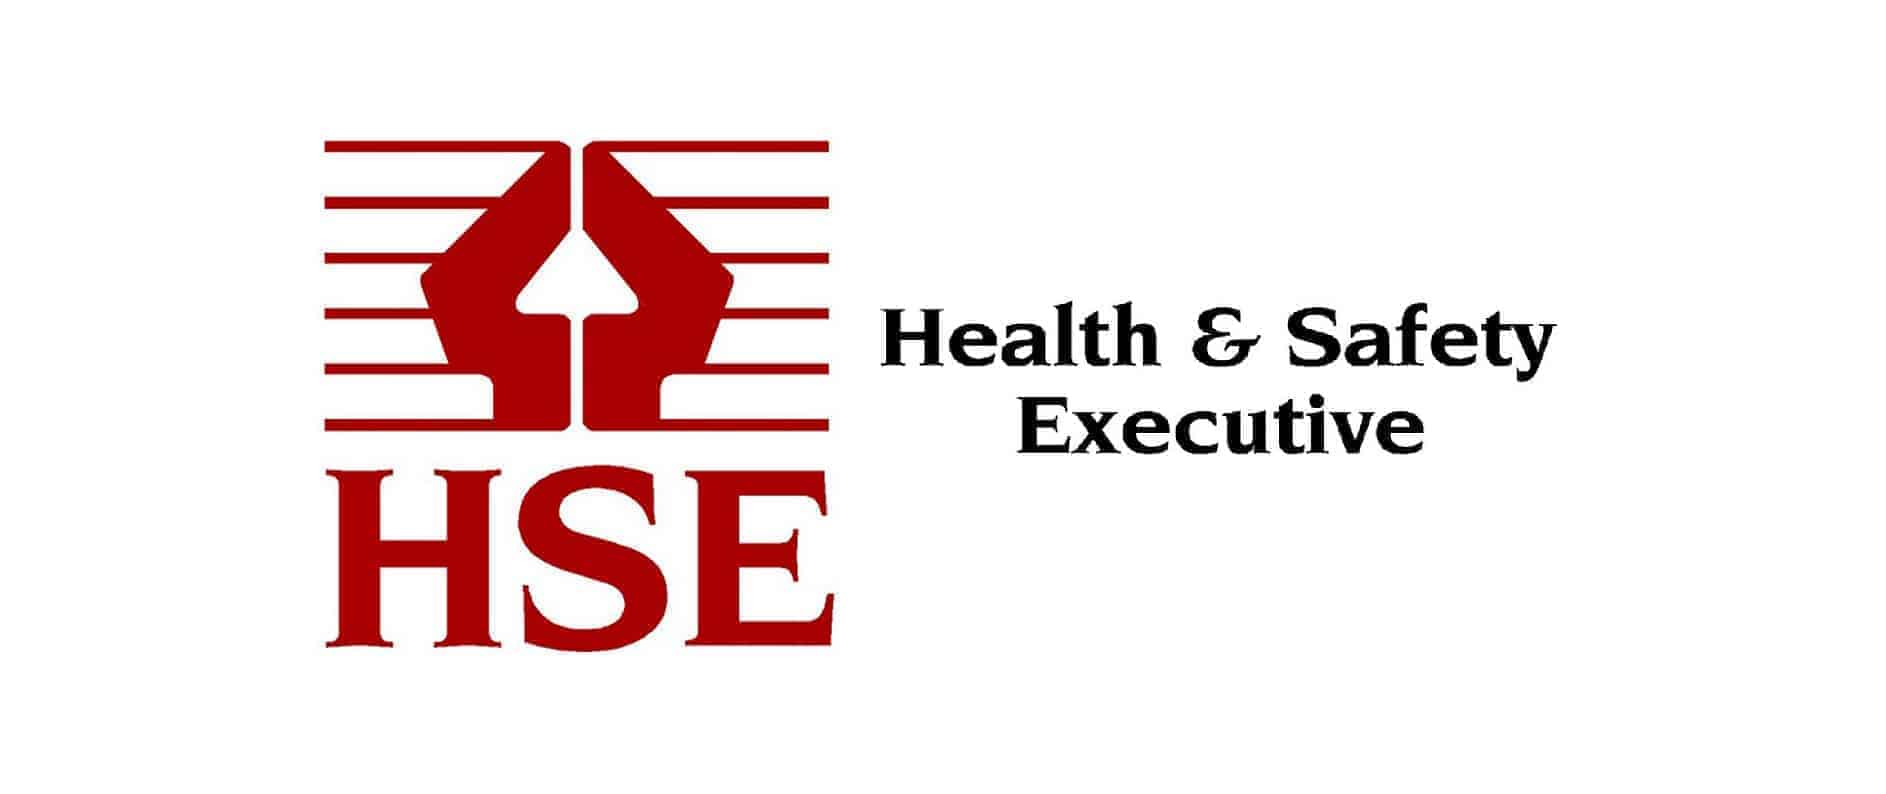 The Health & Safety Executive First Aid Bulletin